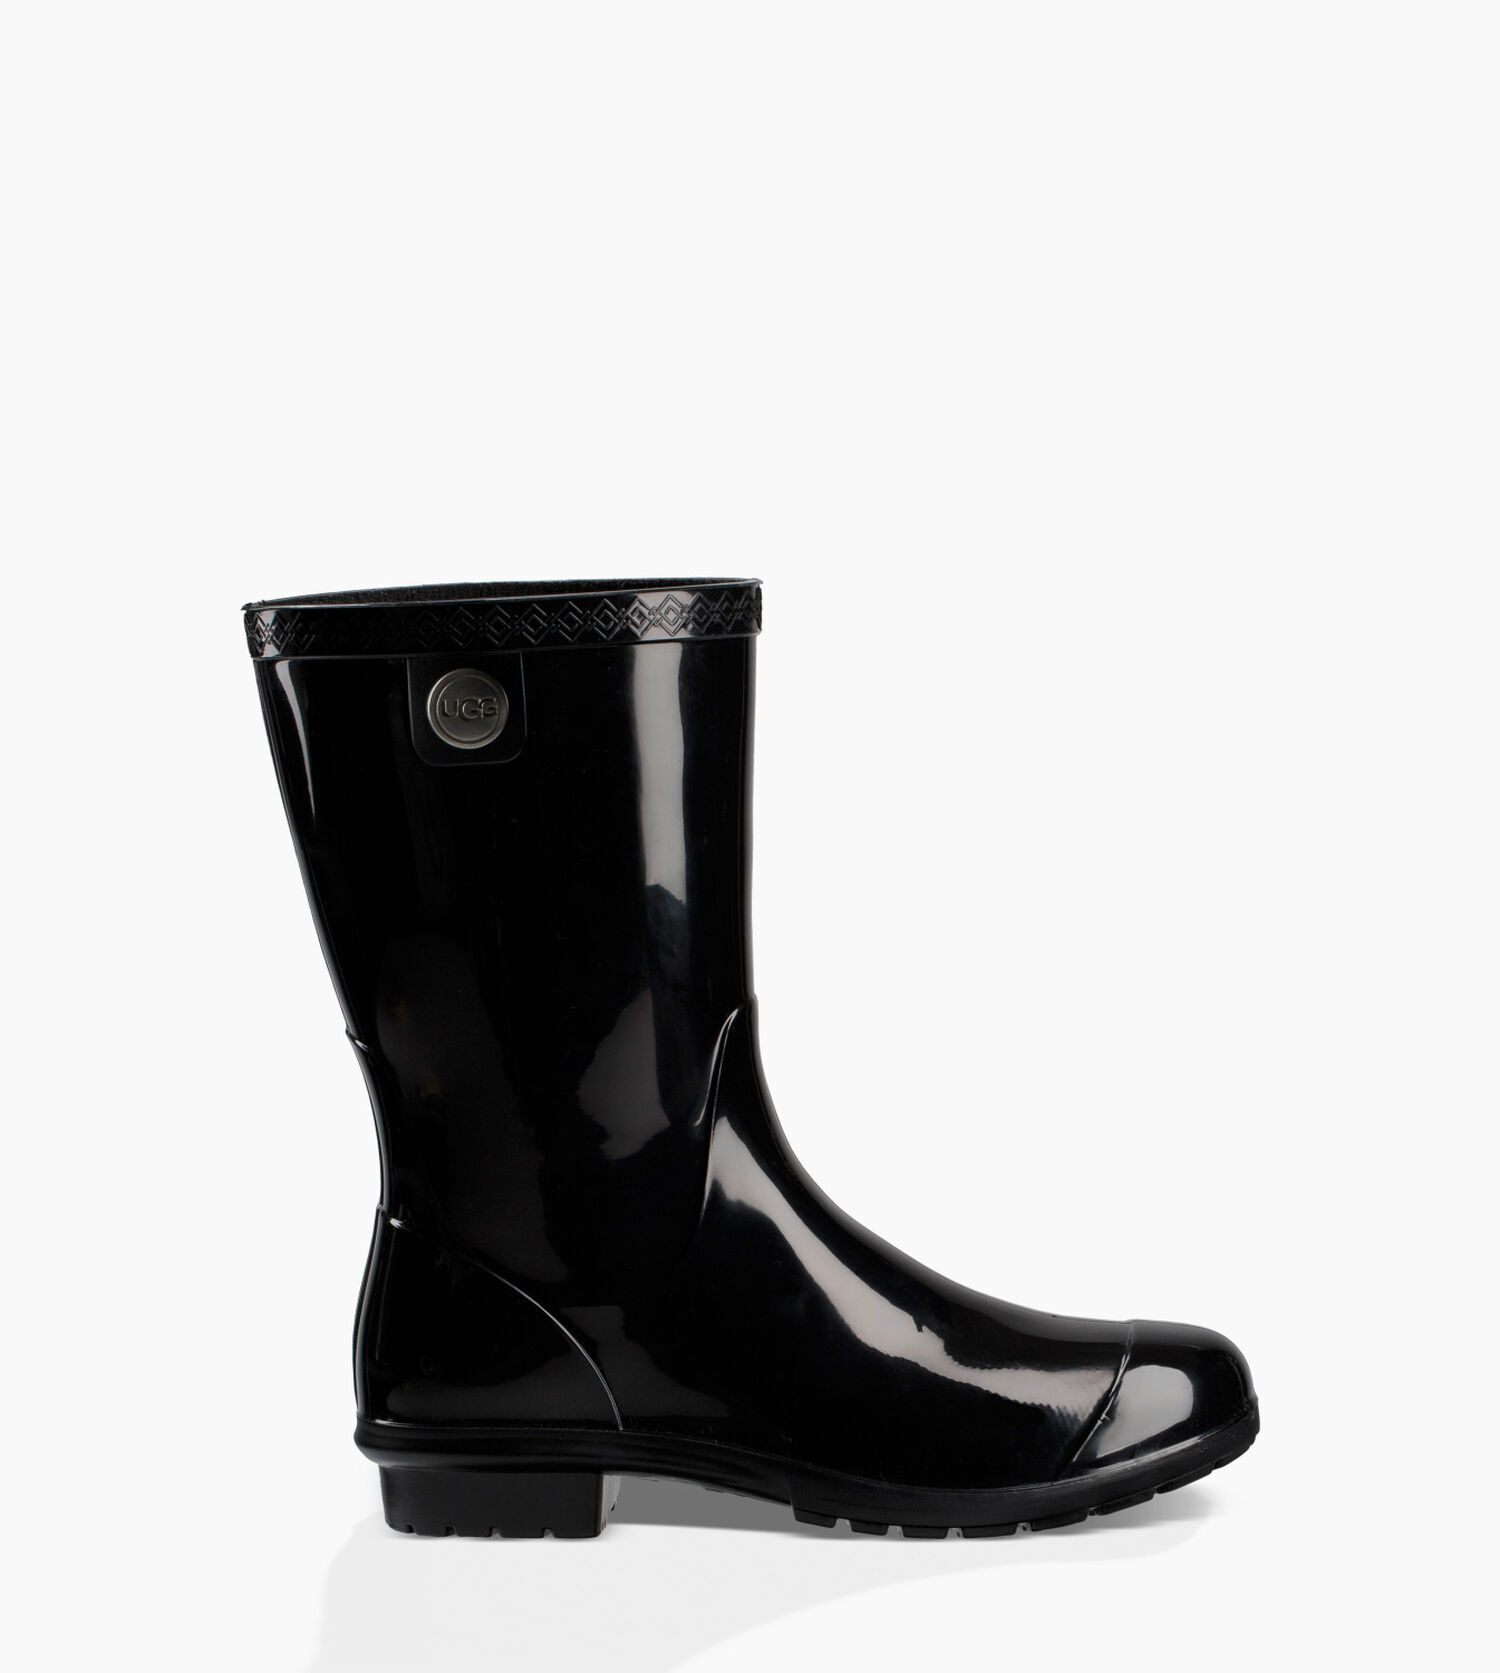 57ce4c40d42 Women's Share this product Sienna Rain Boot